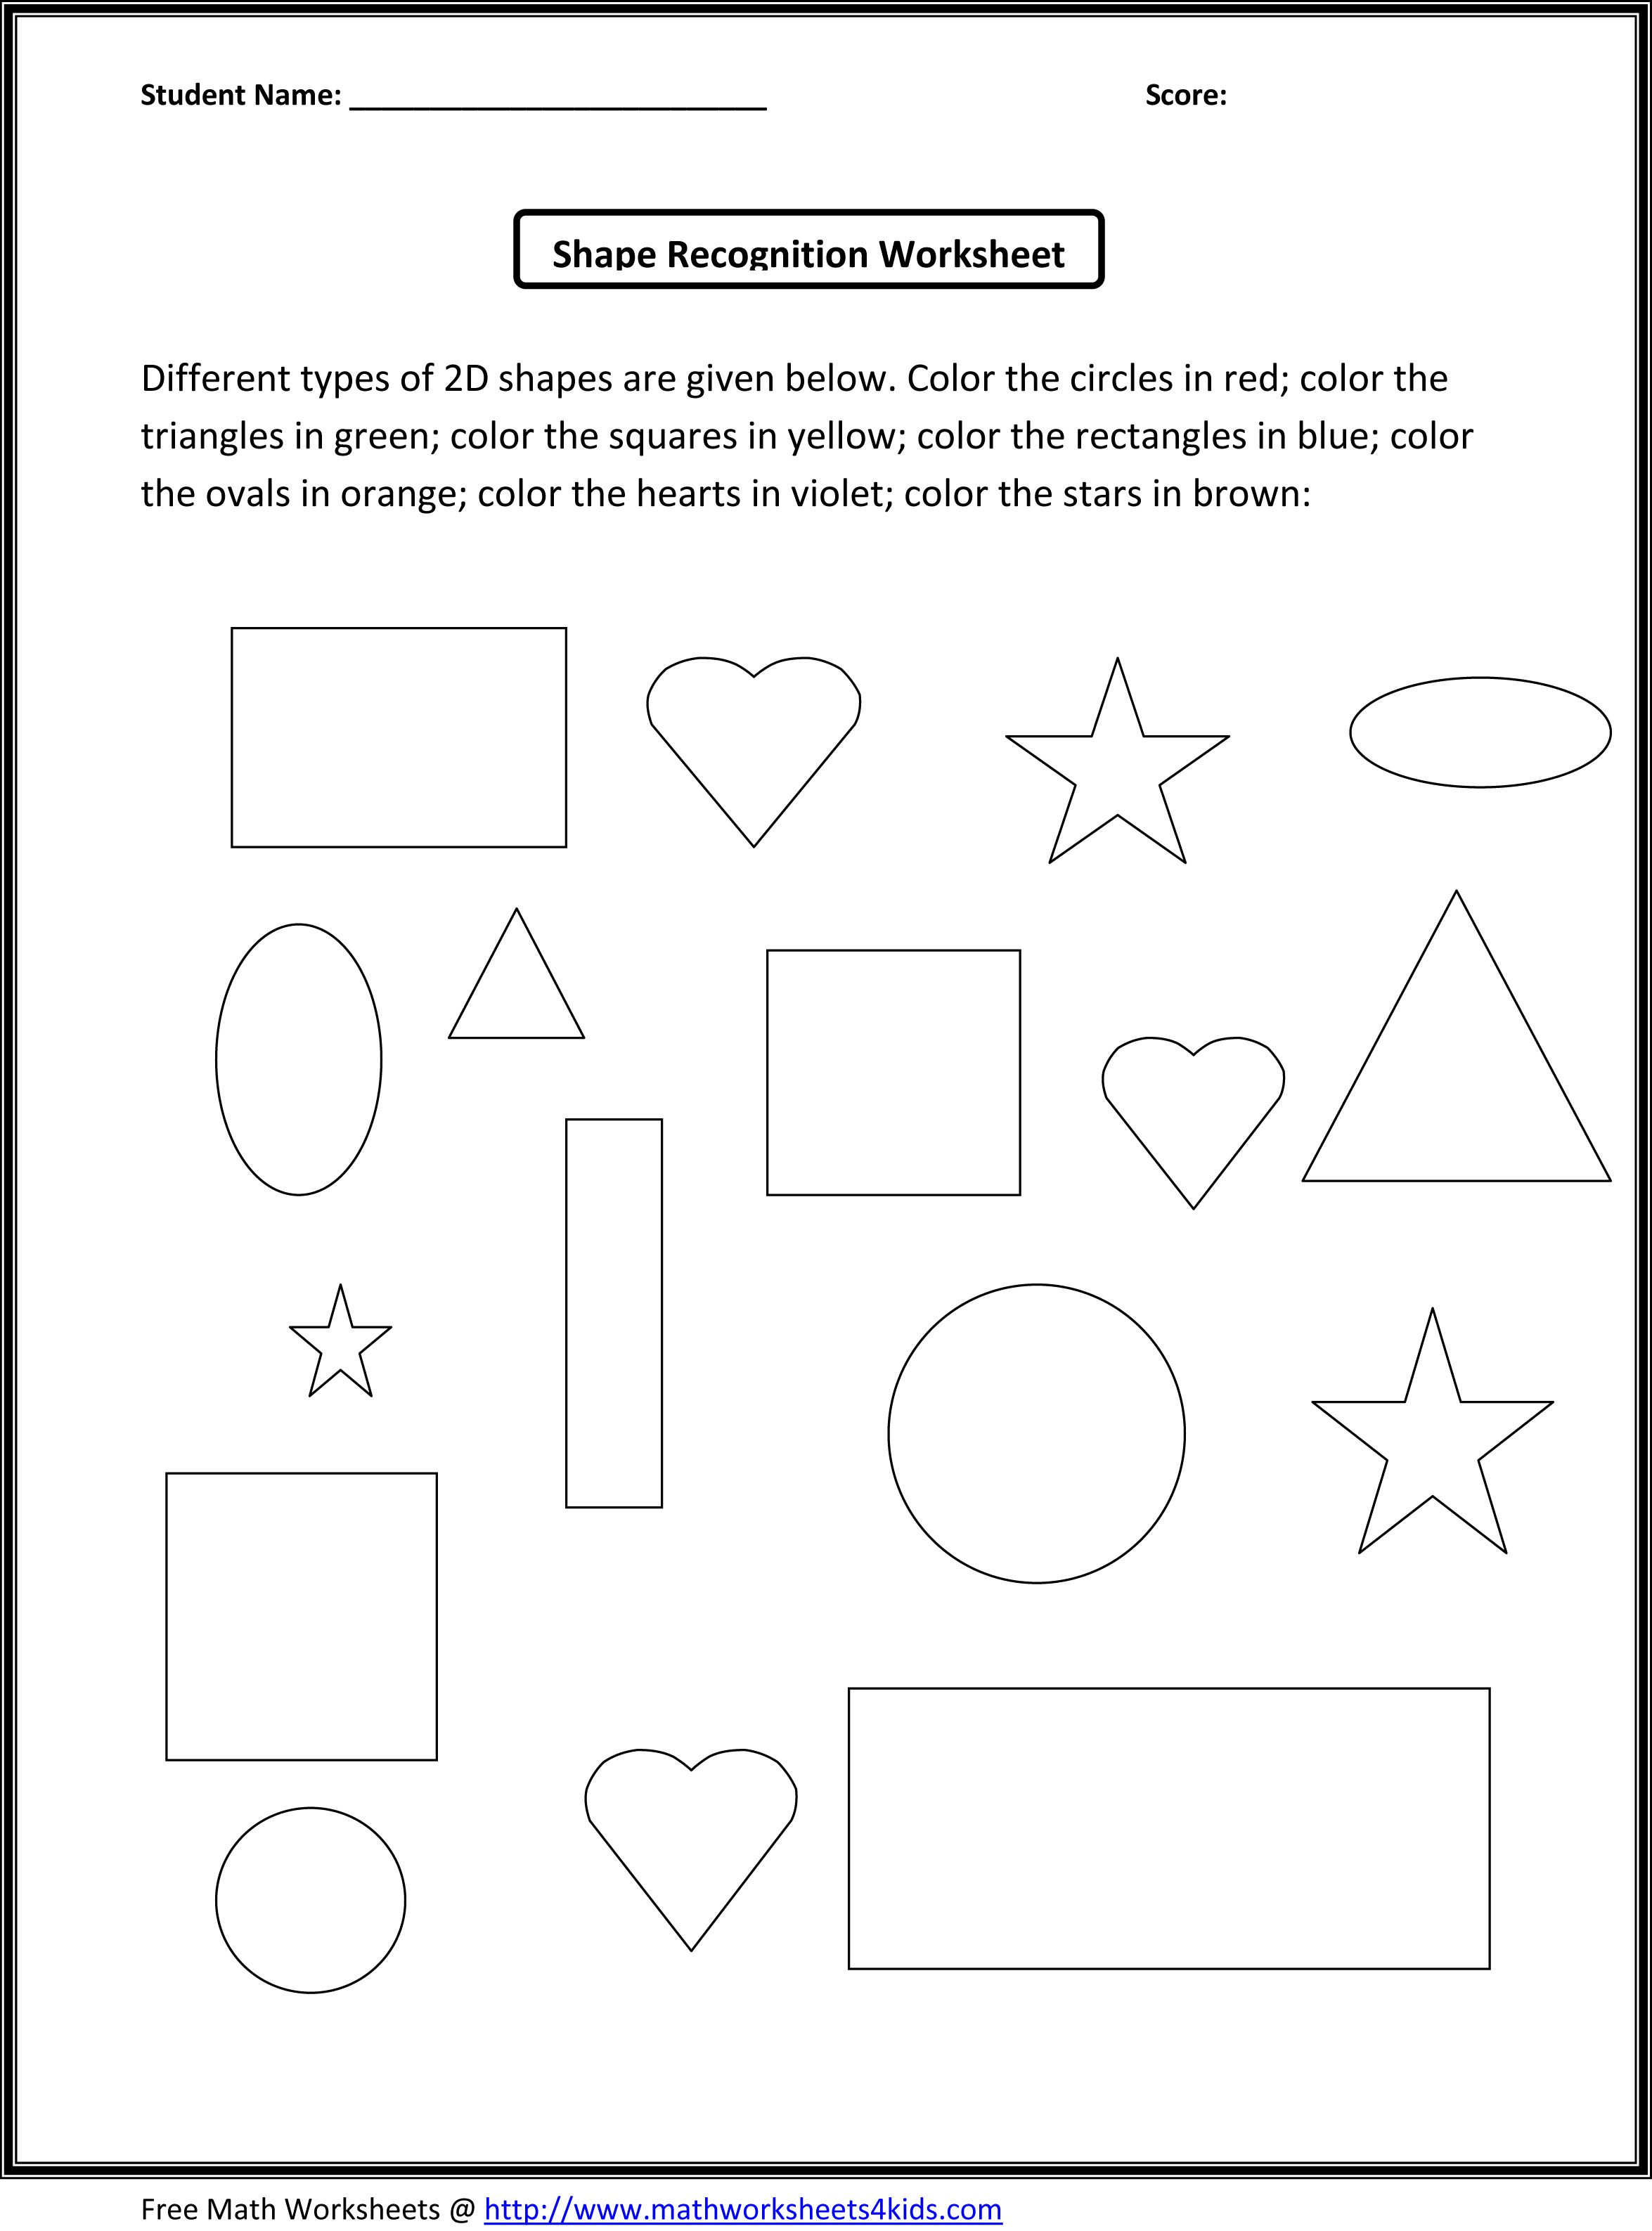 Spanish Worksheets For Kindergarten | Money Worksheets This